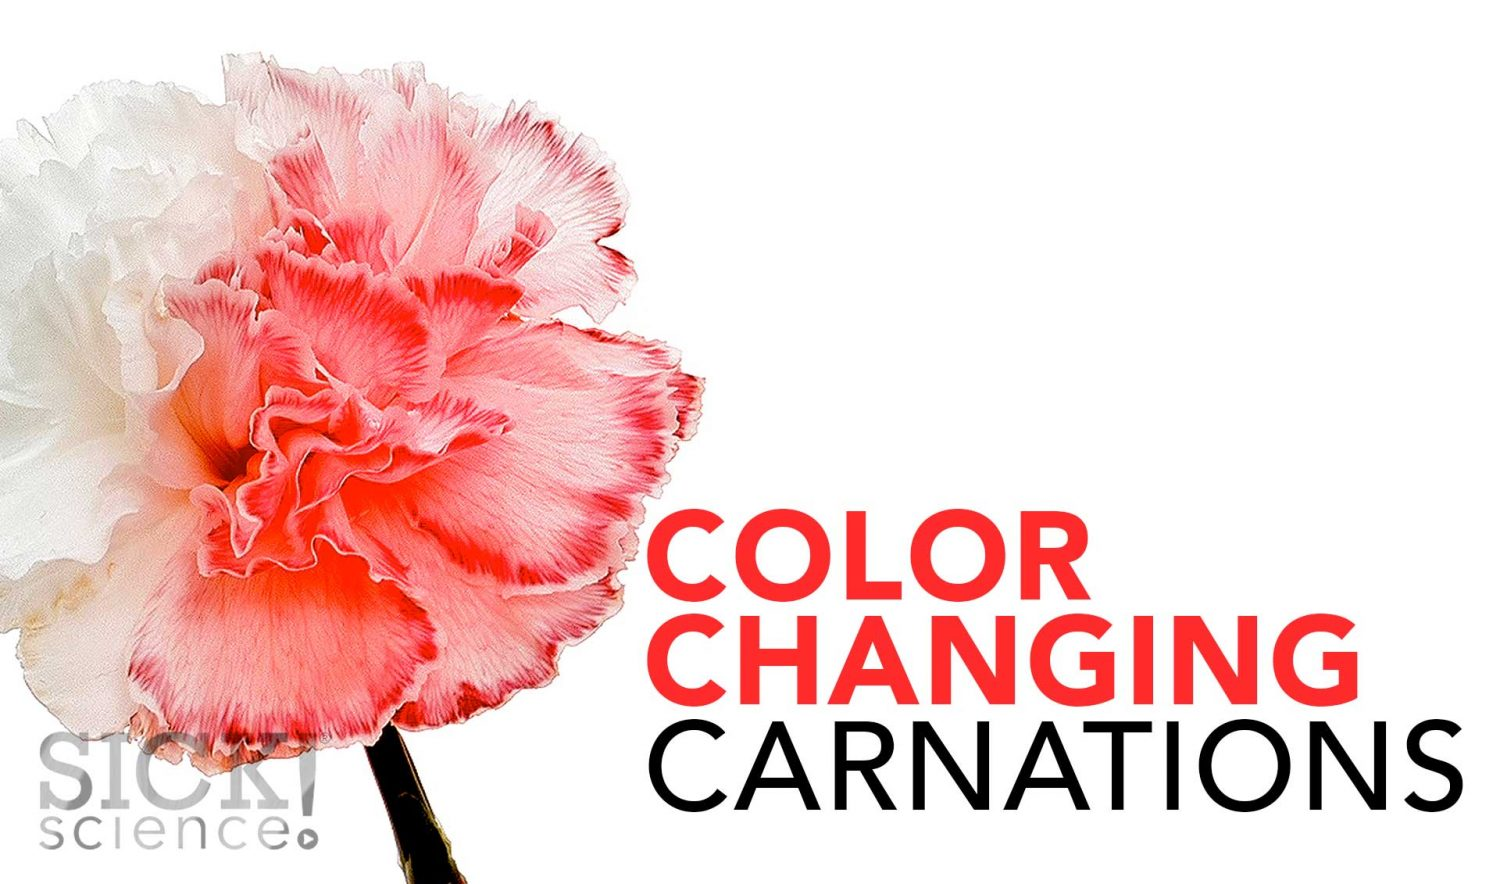 Color Changing Carnations Sick Science 020 Science